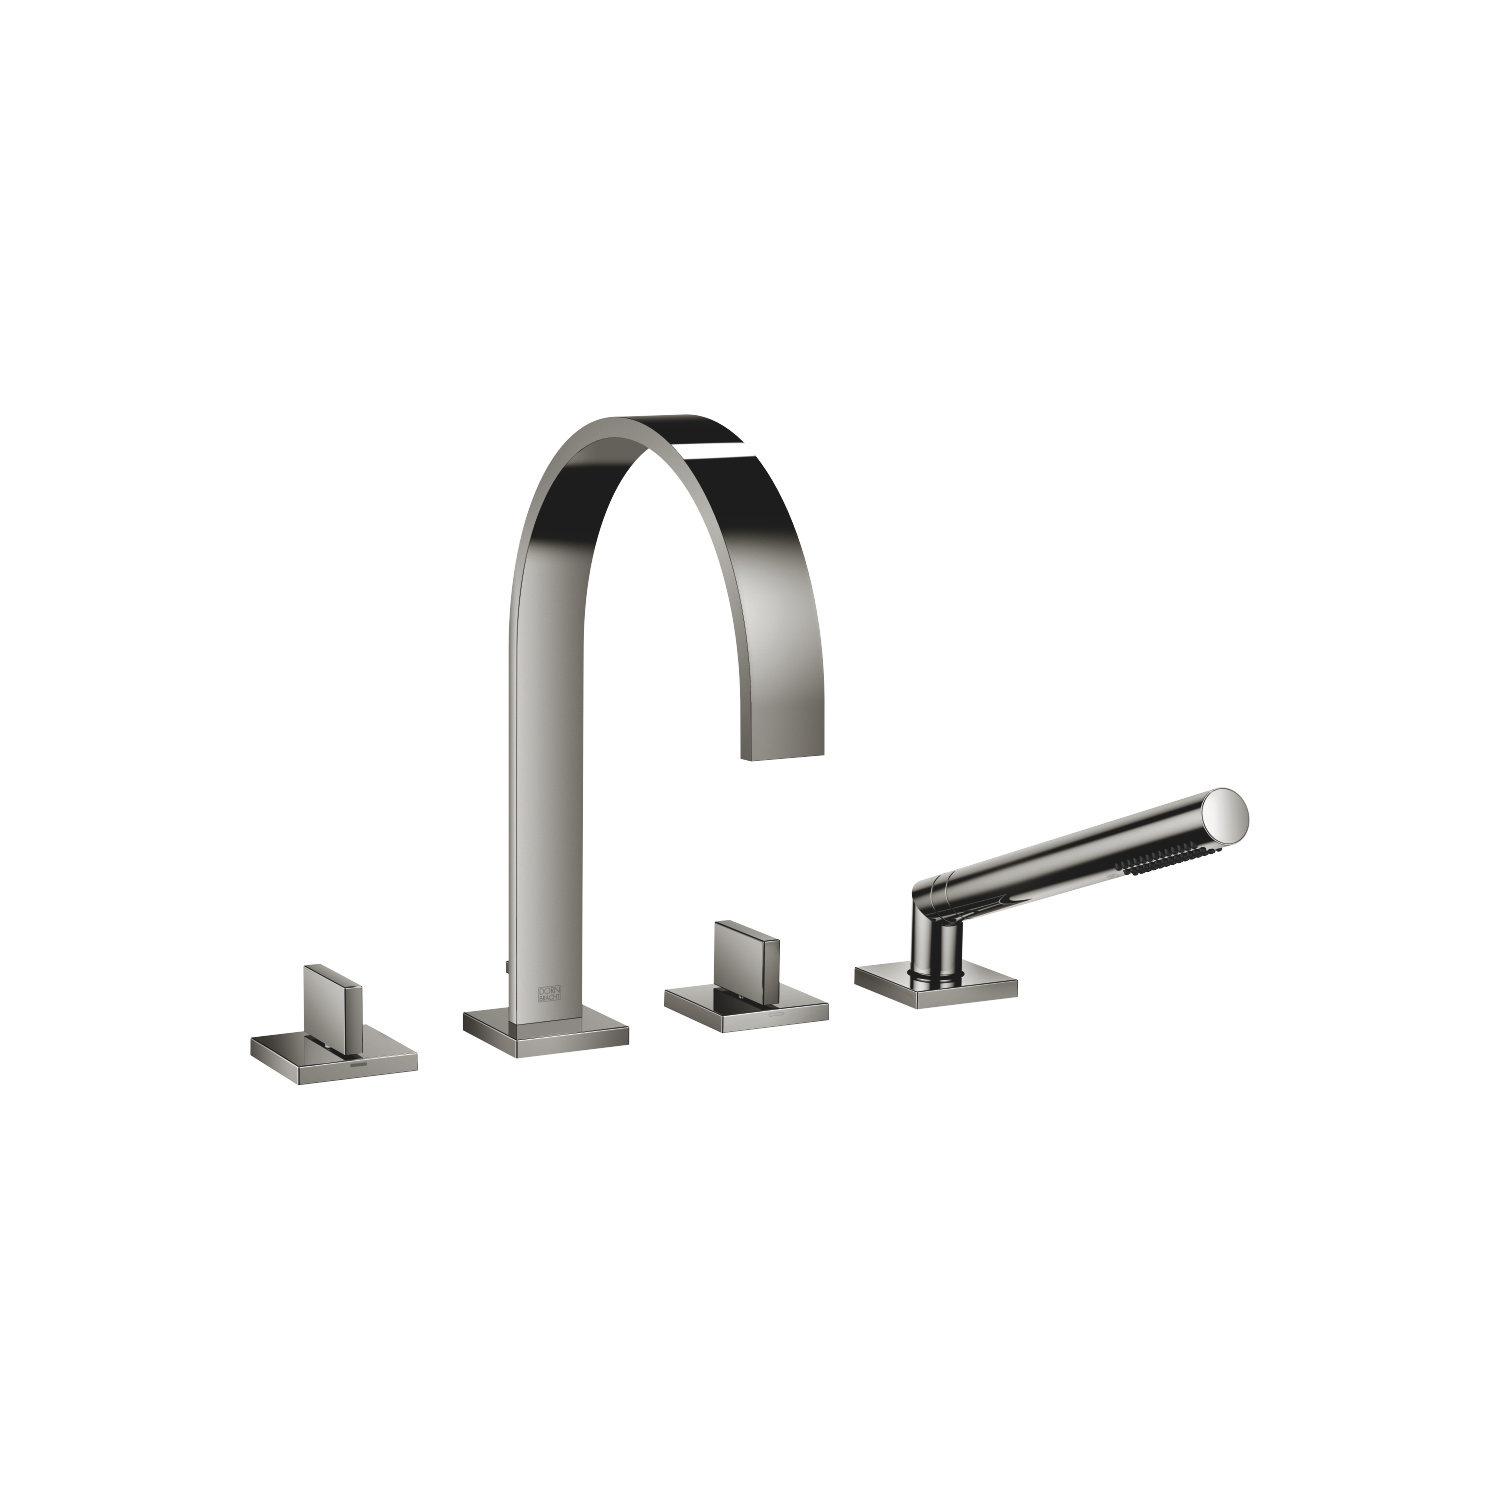 Bath shower set for bath rim or tile edge installation - platinum - 27 532 782-08